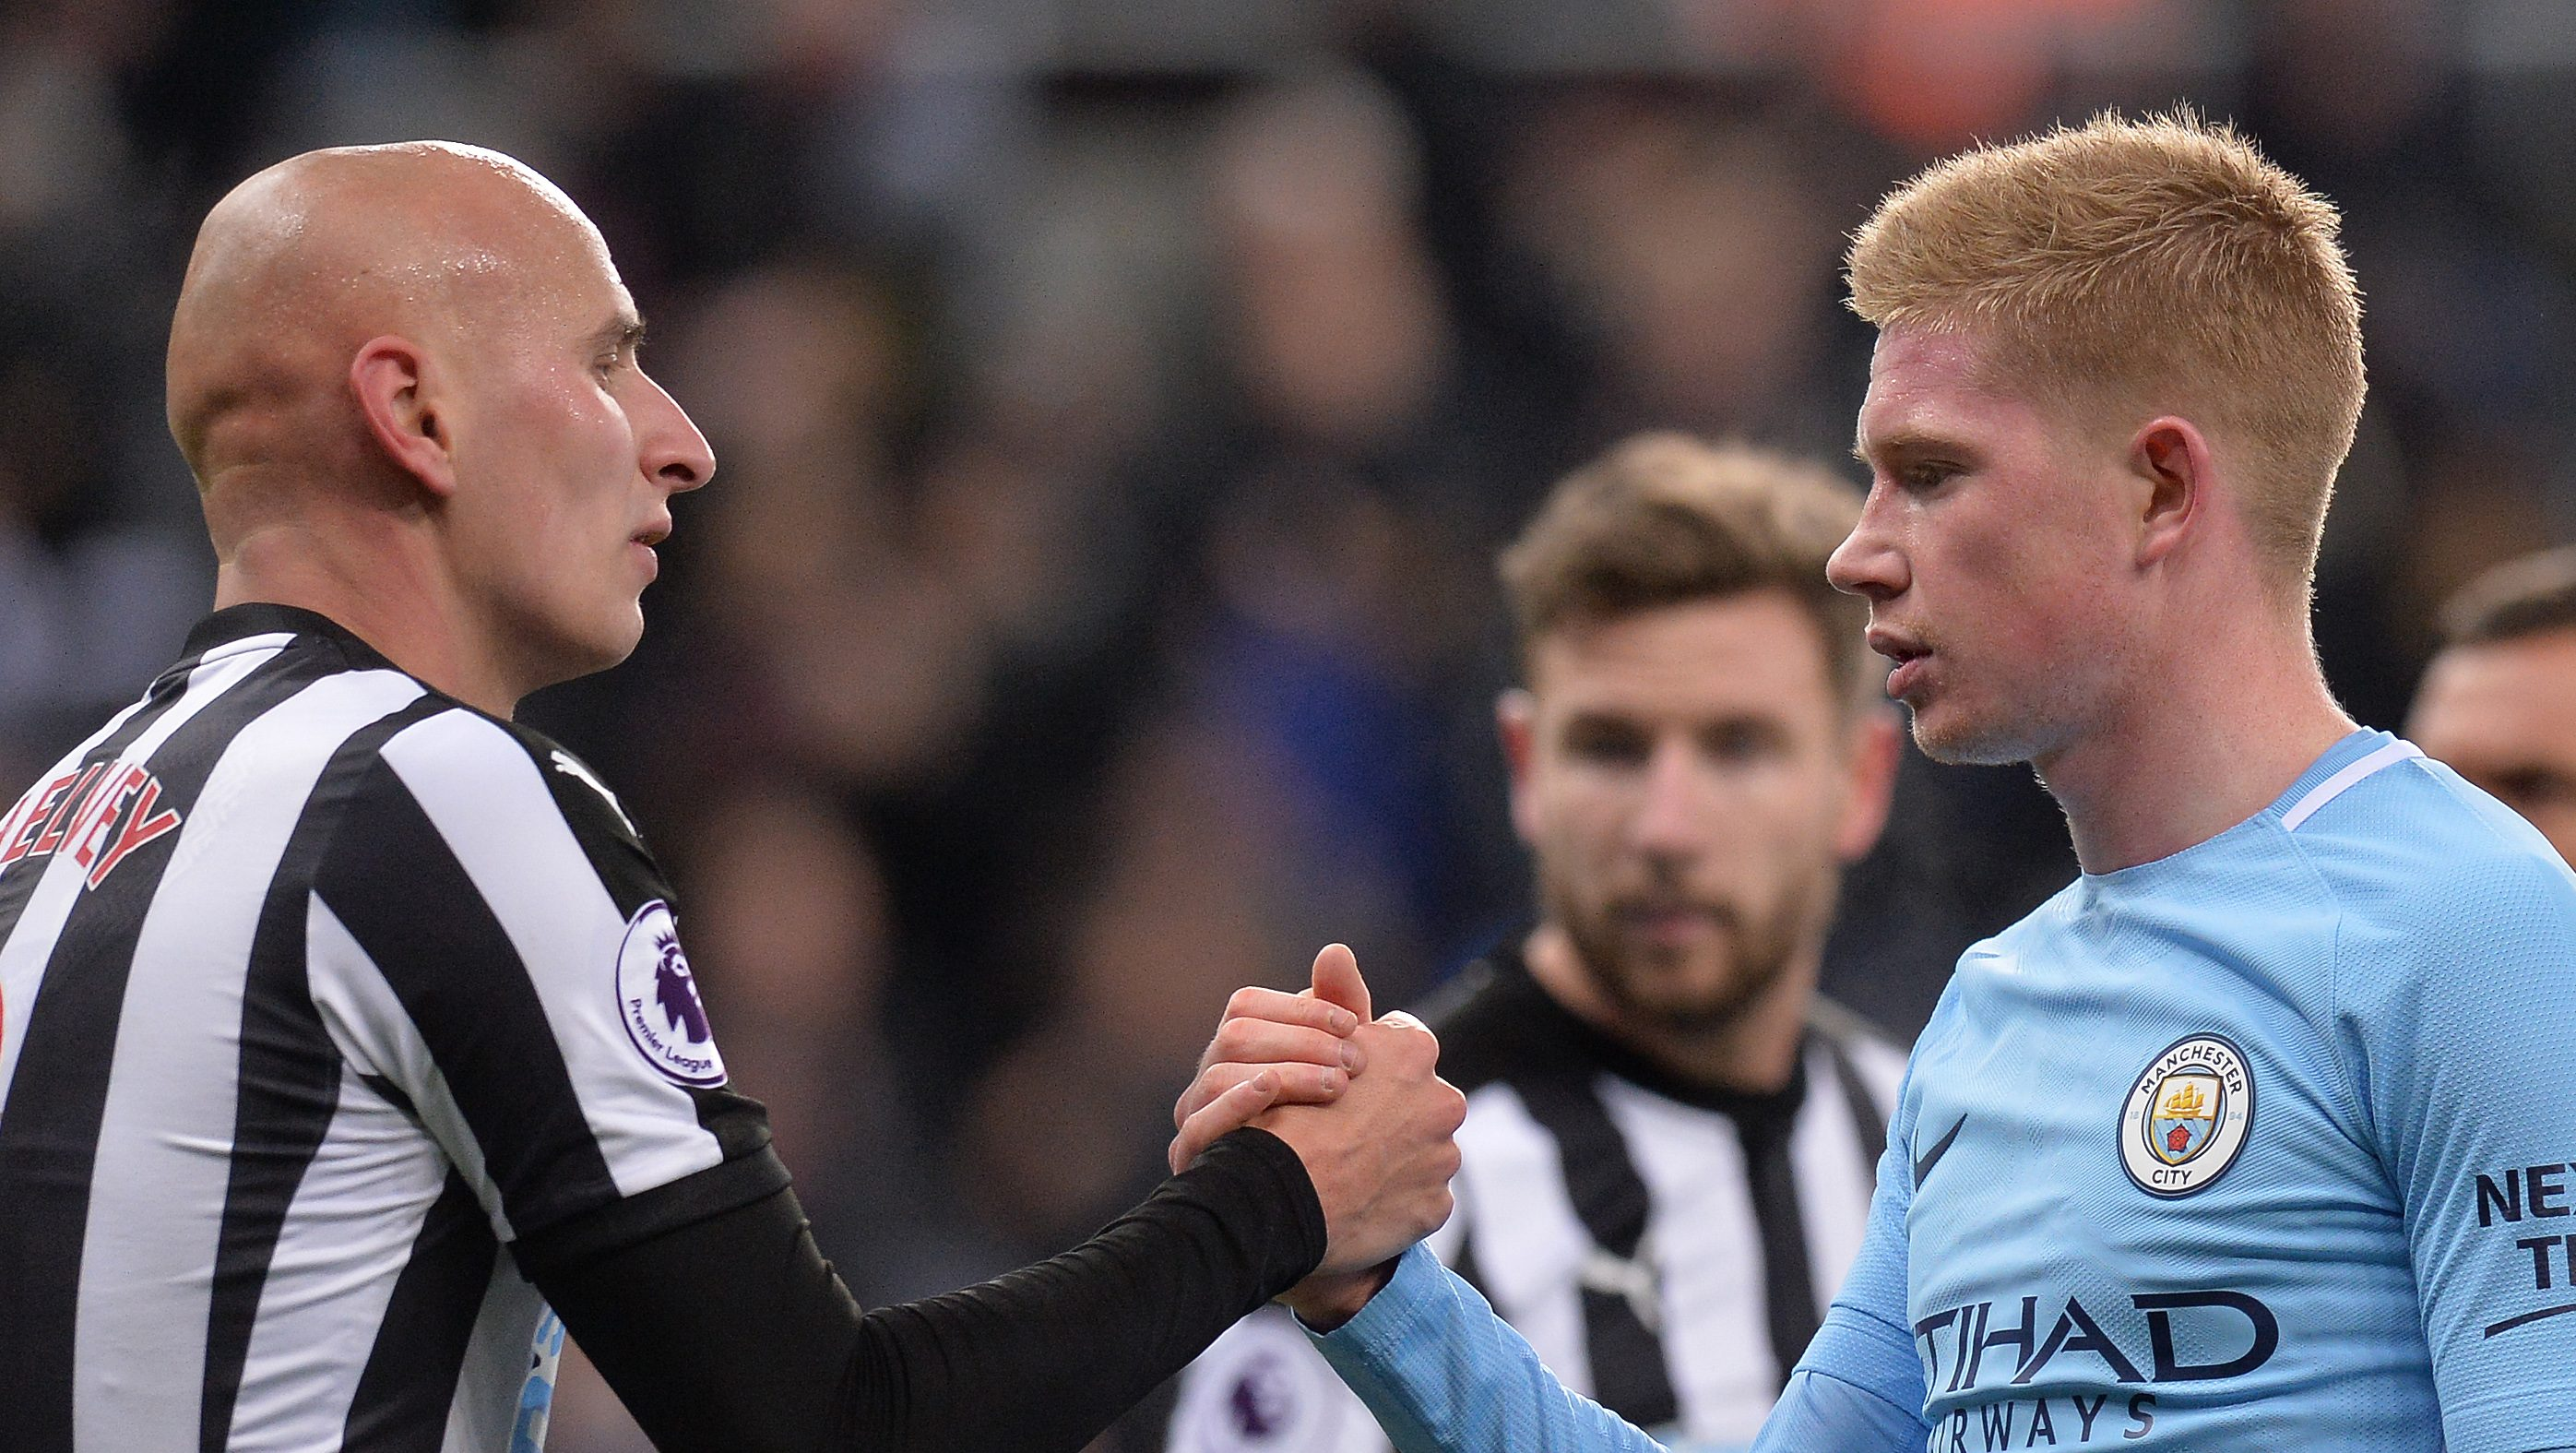 Manchester City - Newcastle preview: How to watch, start time, stream